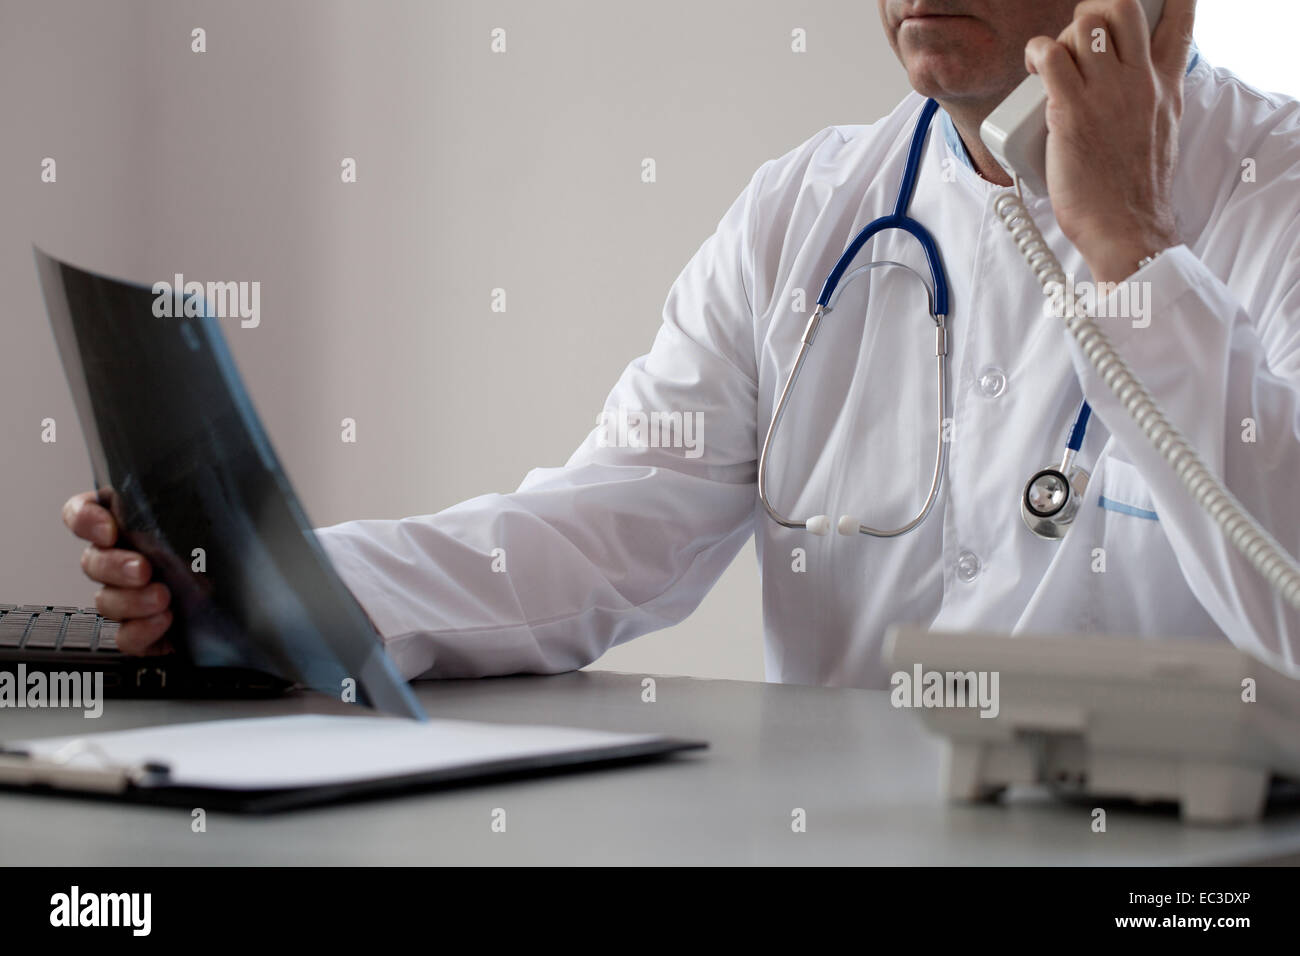 Senior doctor is talking on the phone in his consulting room viewing a x-ray image. - Stock Image